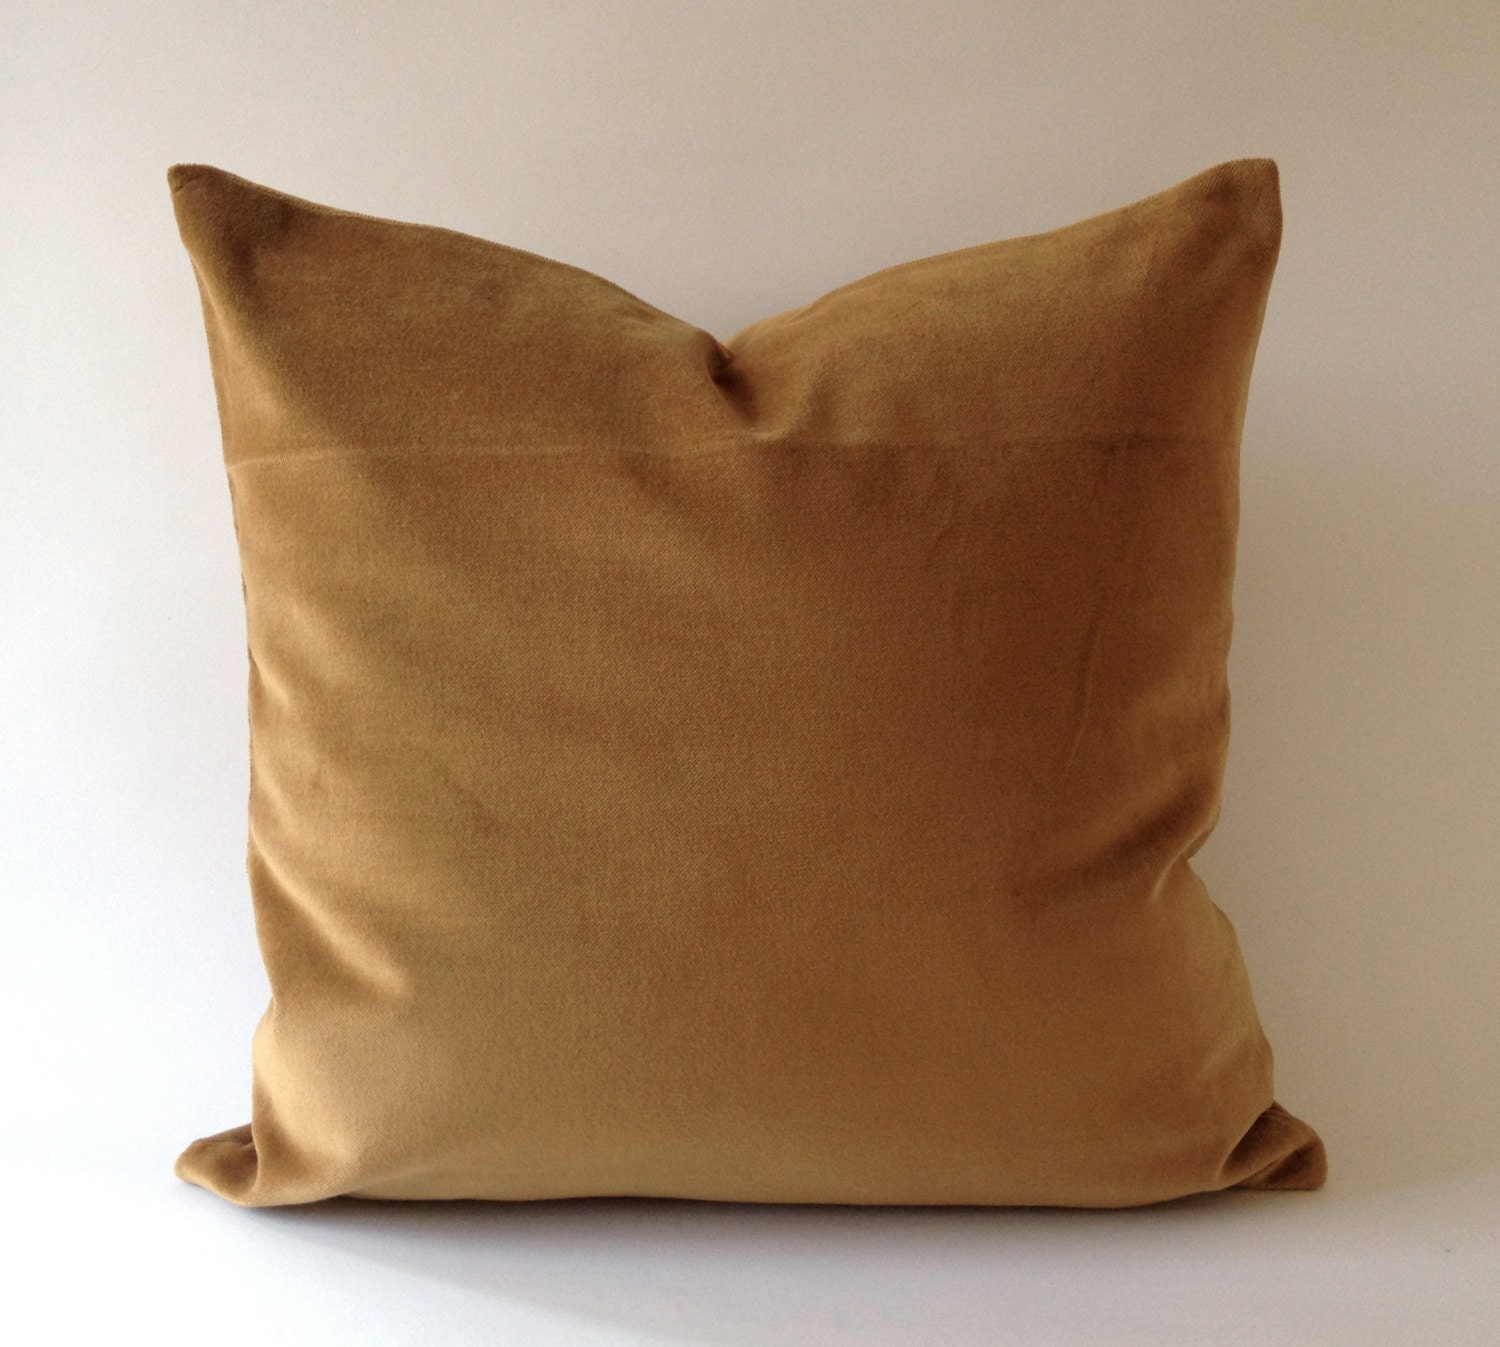 Decorative Pillow Covers 26x26 : 20x20 TO 26x26 Camel Brown Cotton Velvet by NoraQuinonez on Etsy